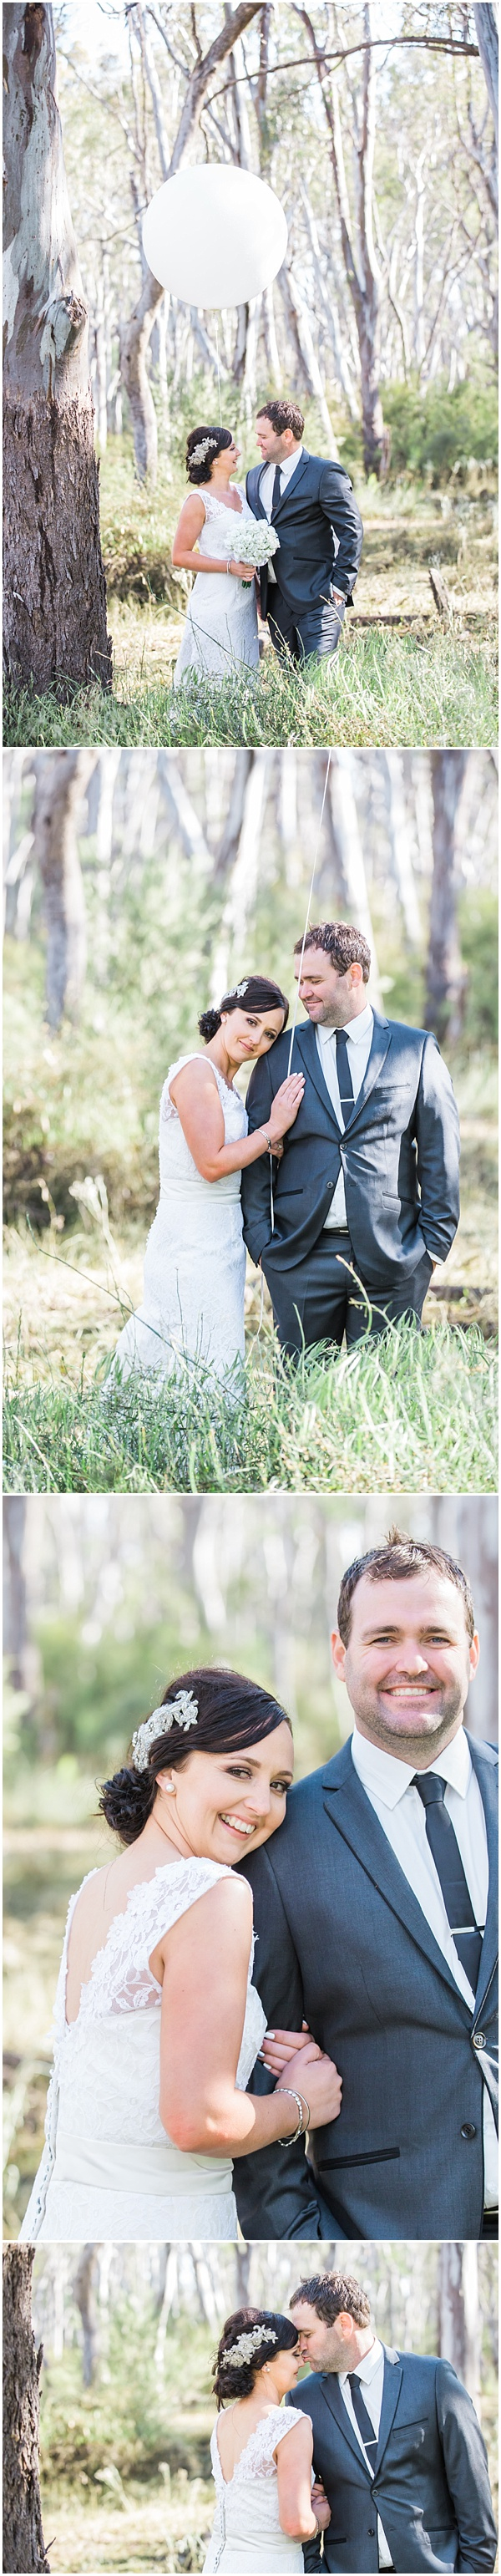 Echuca Moama Wedding Photography_0016